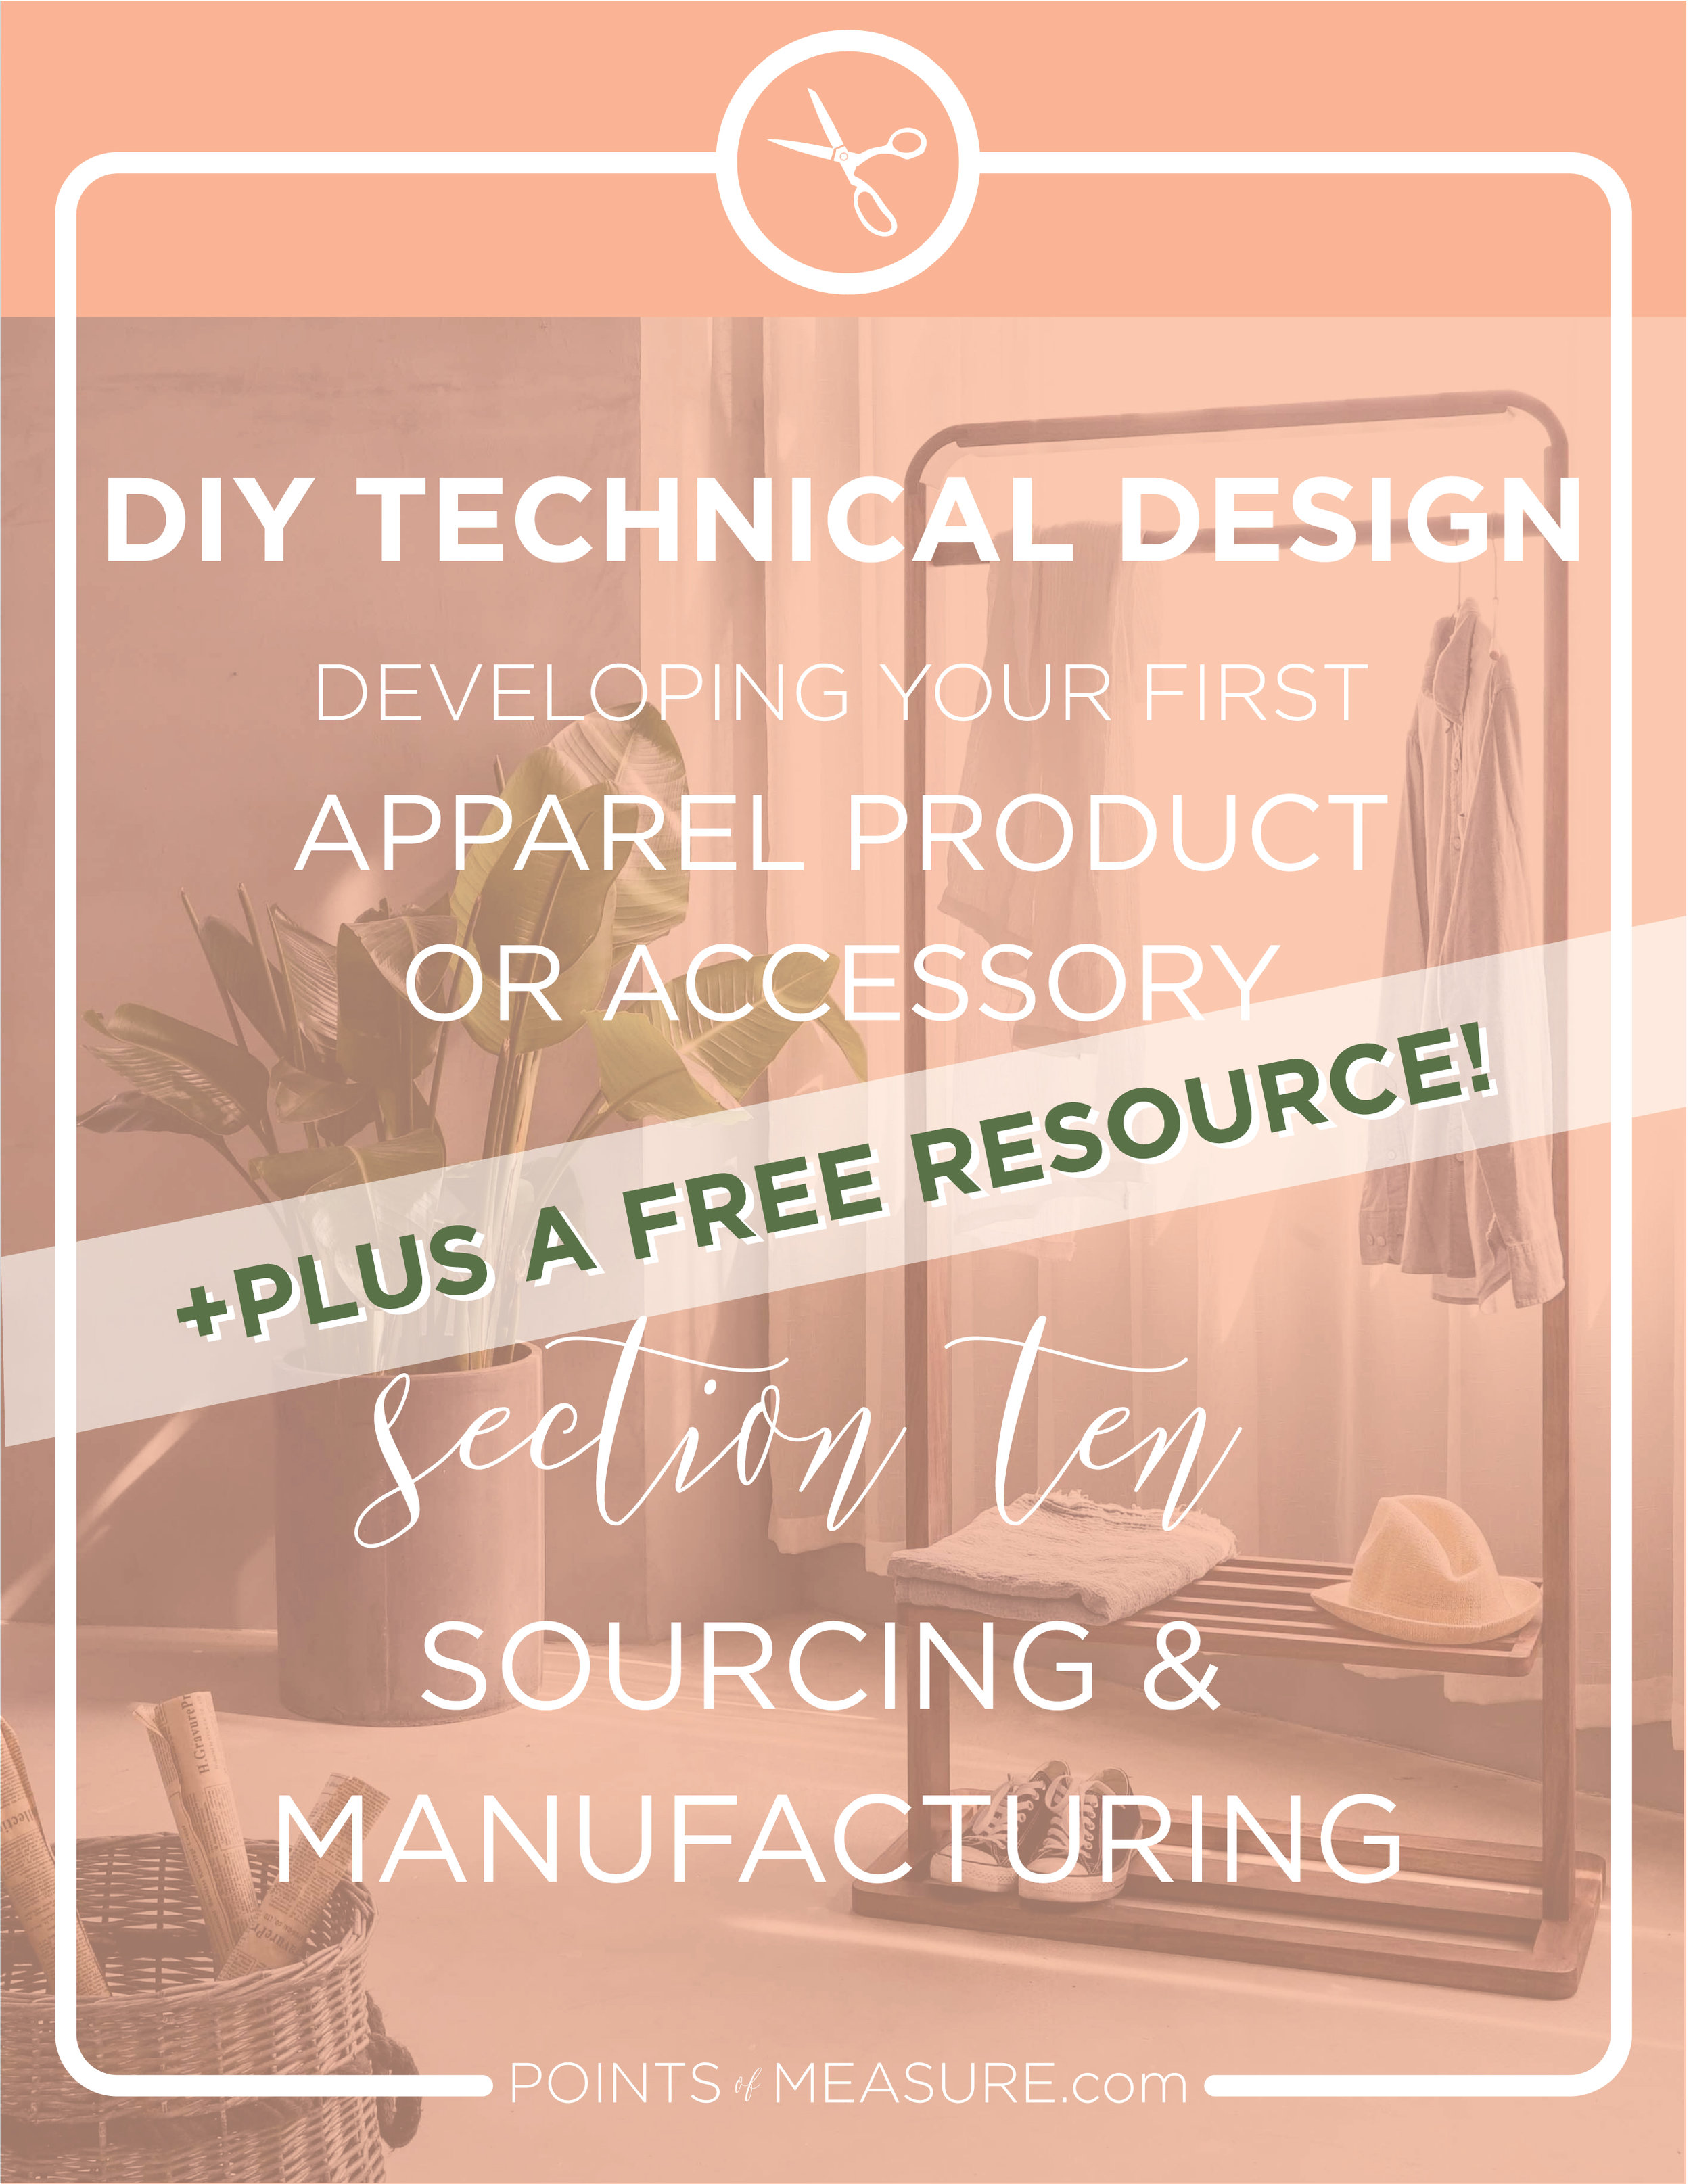 diy-technical-sourcing-manufacturing-points-of-measure.jpg